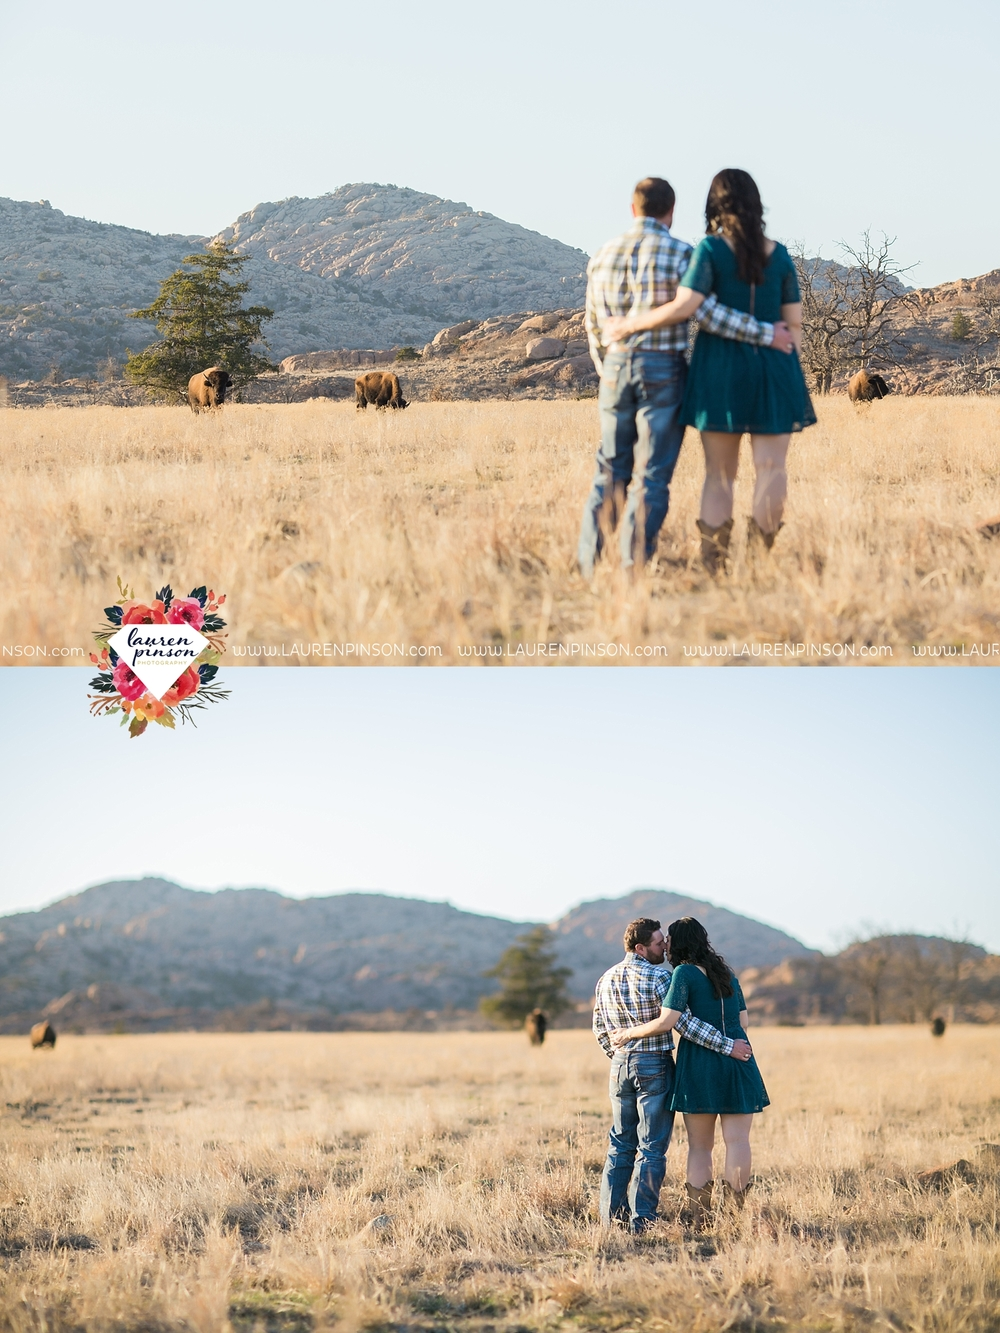 wichita-falls-texas-engagement-photographer-wedding-oklahoma-lawton-wichita-mountains-refuge-outdoors-mountains-engaged_2063.jpg